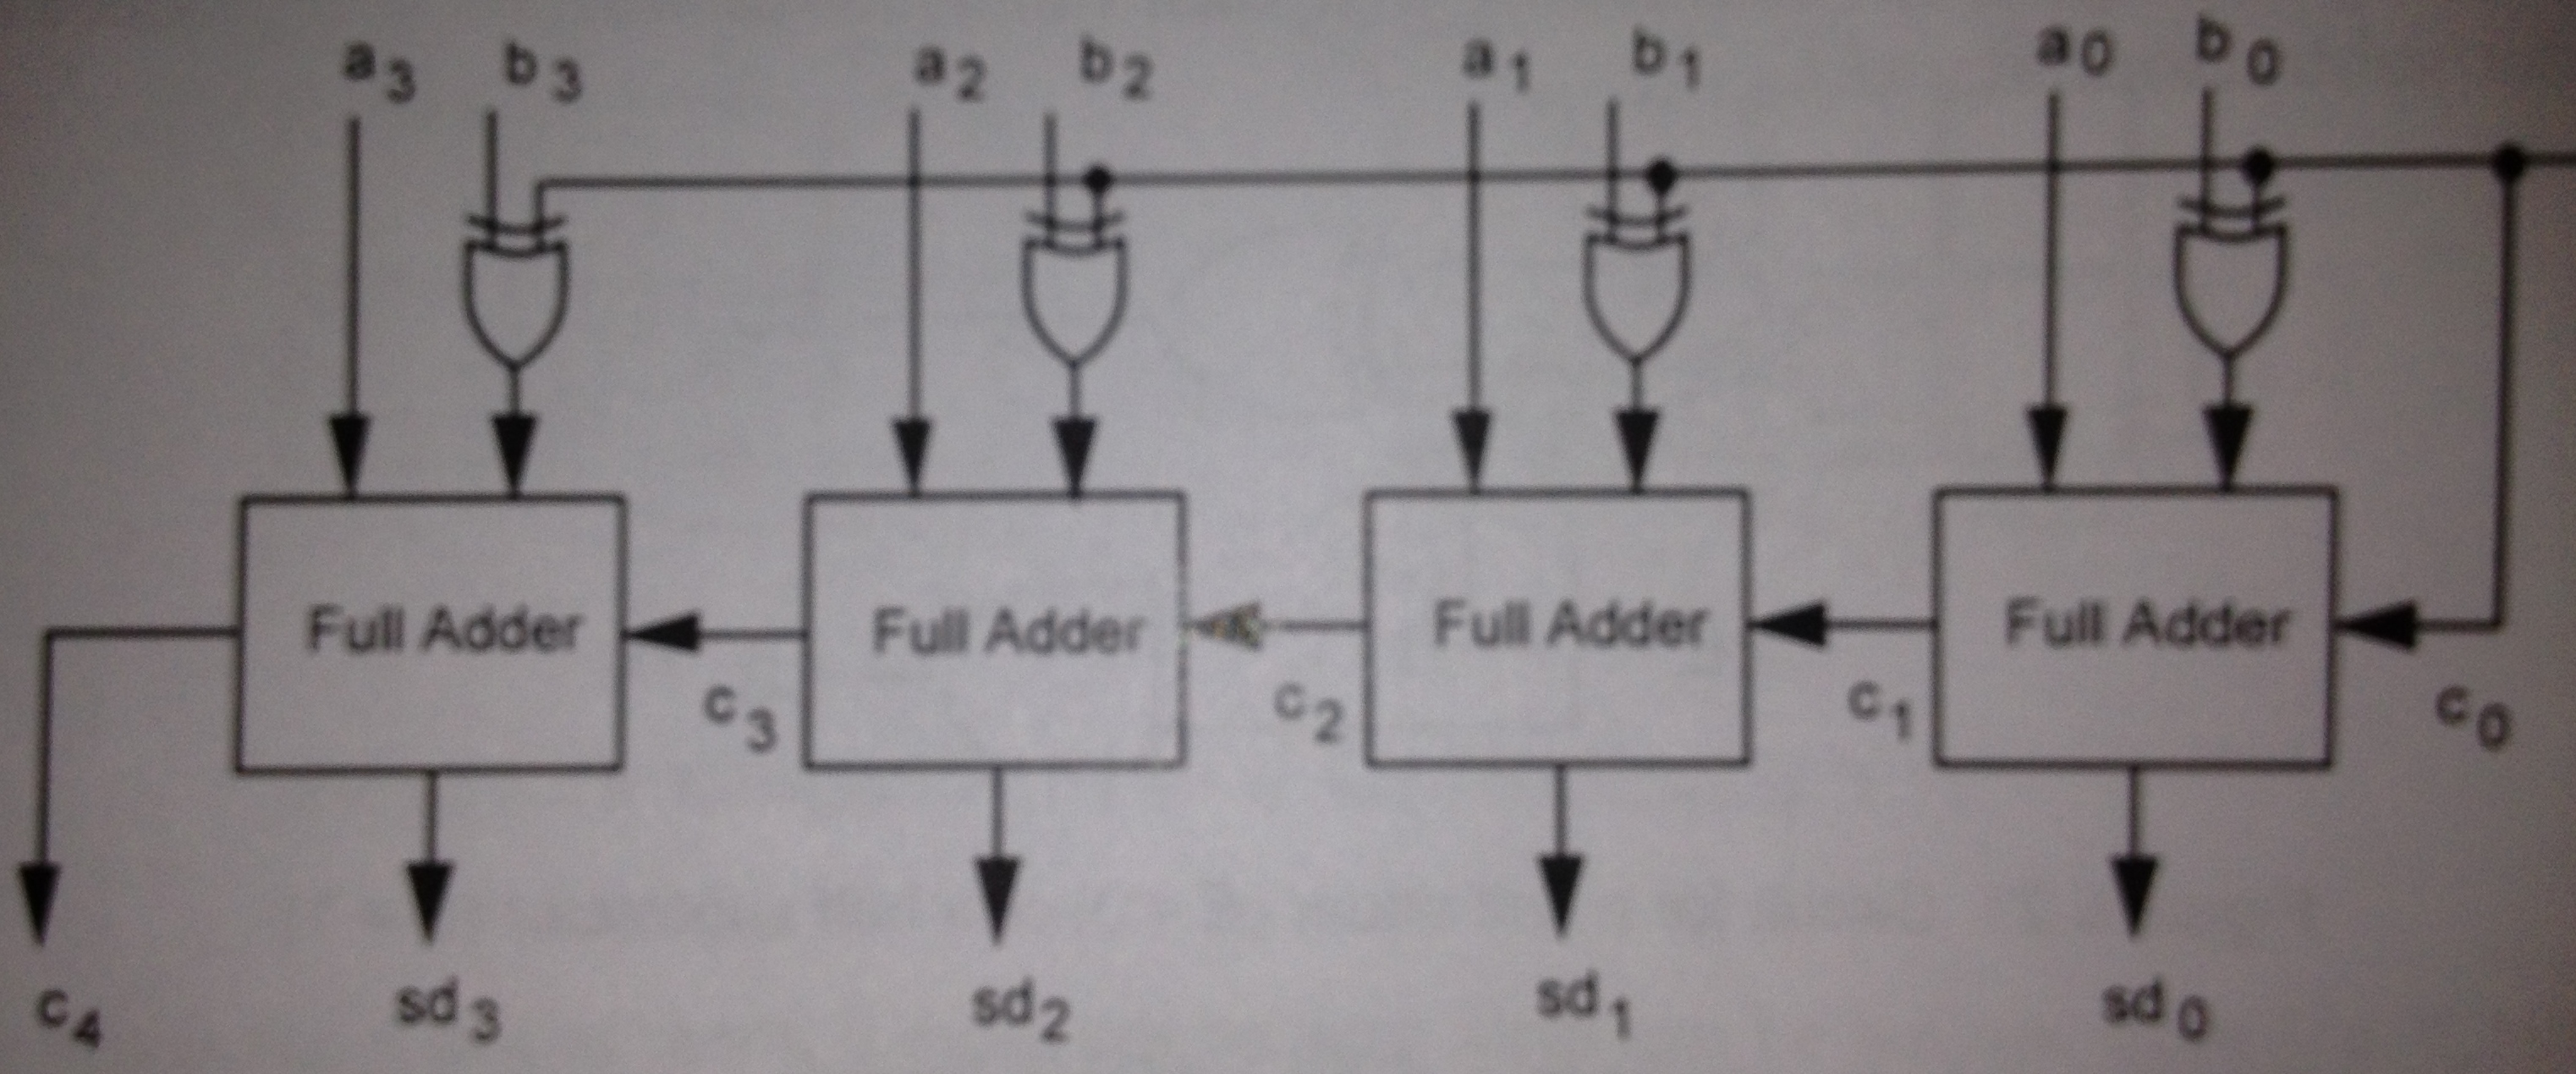 Full Adder Of Four Addition Operation Circuit Diagram Basiccircuit